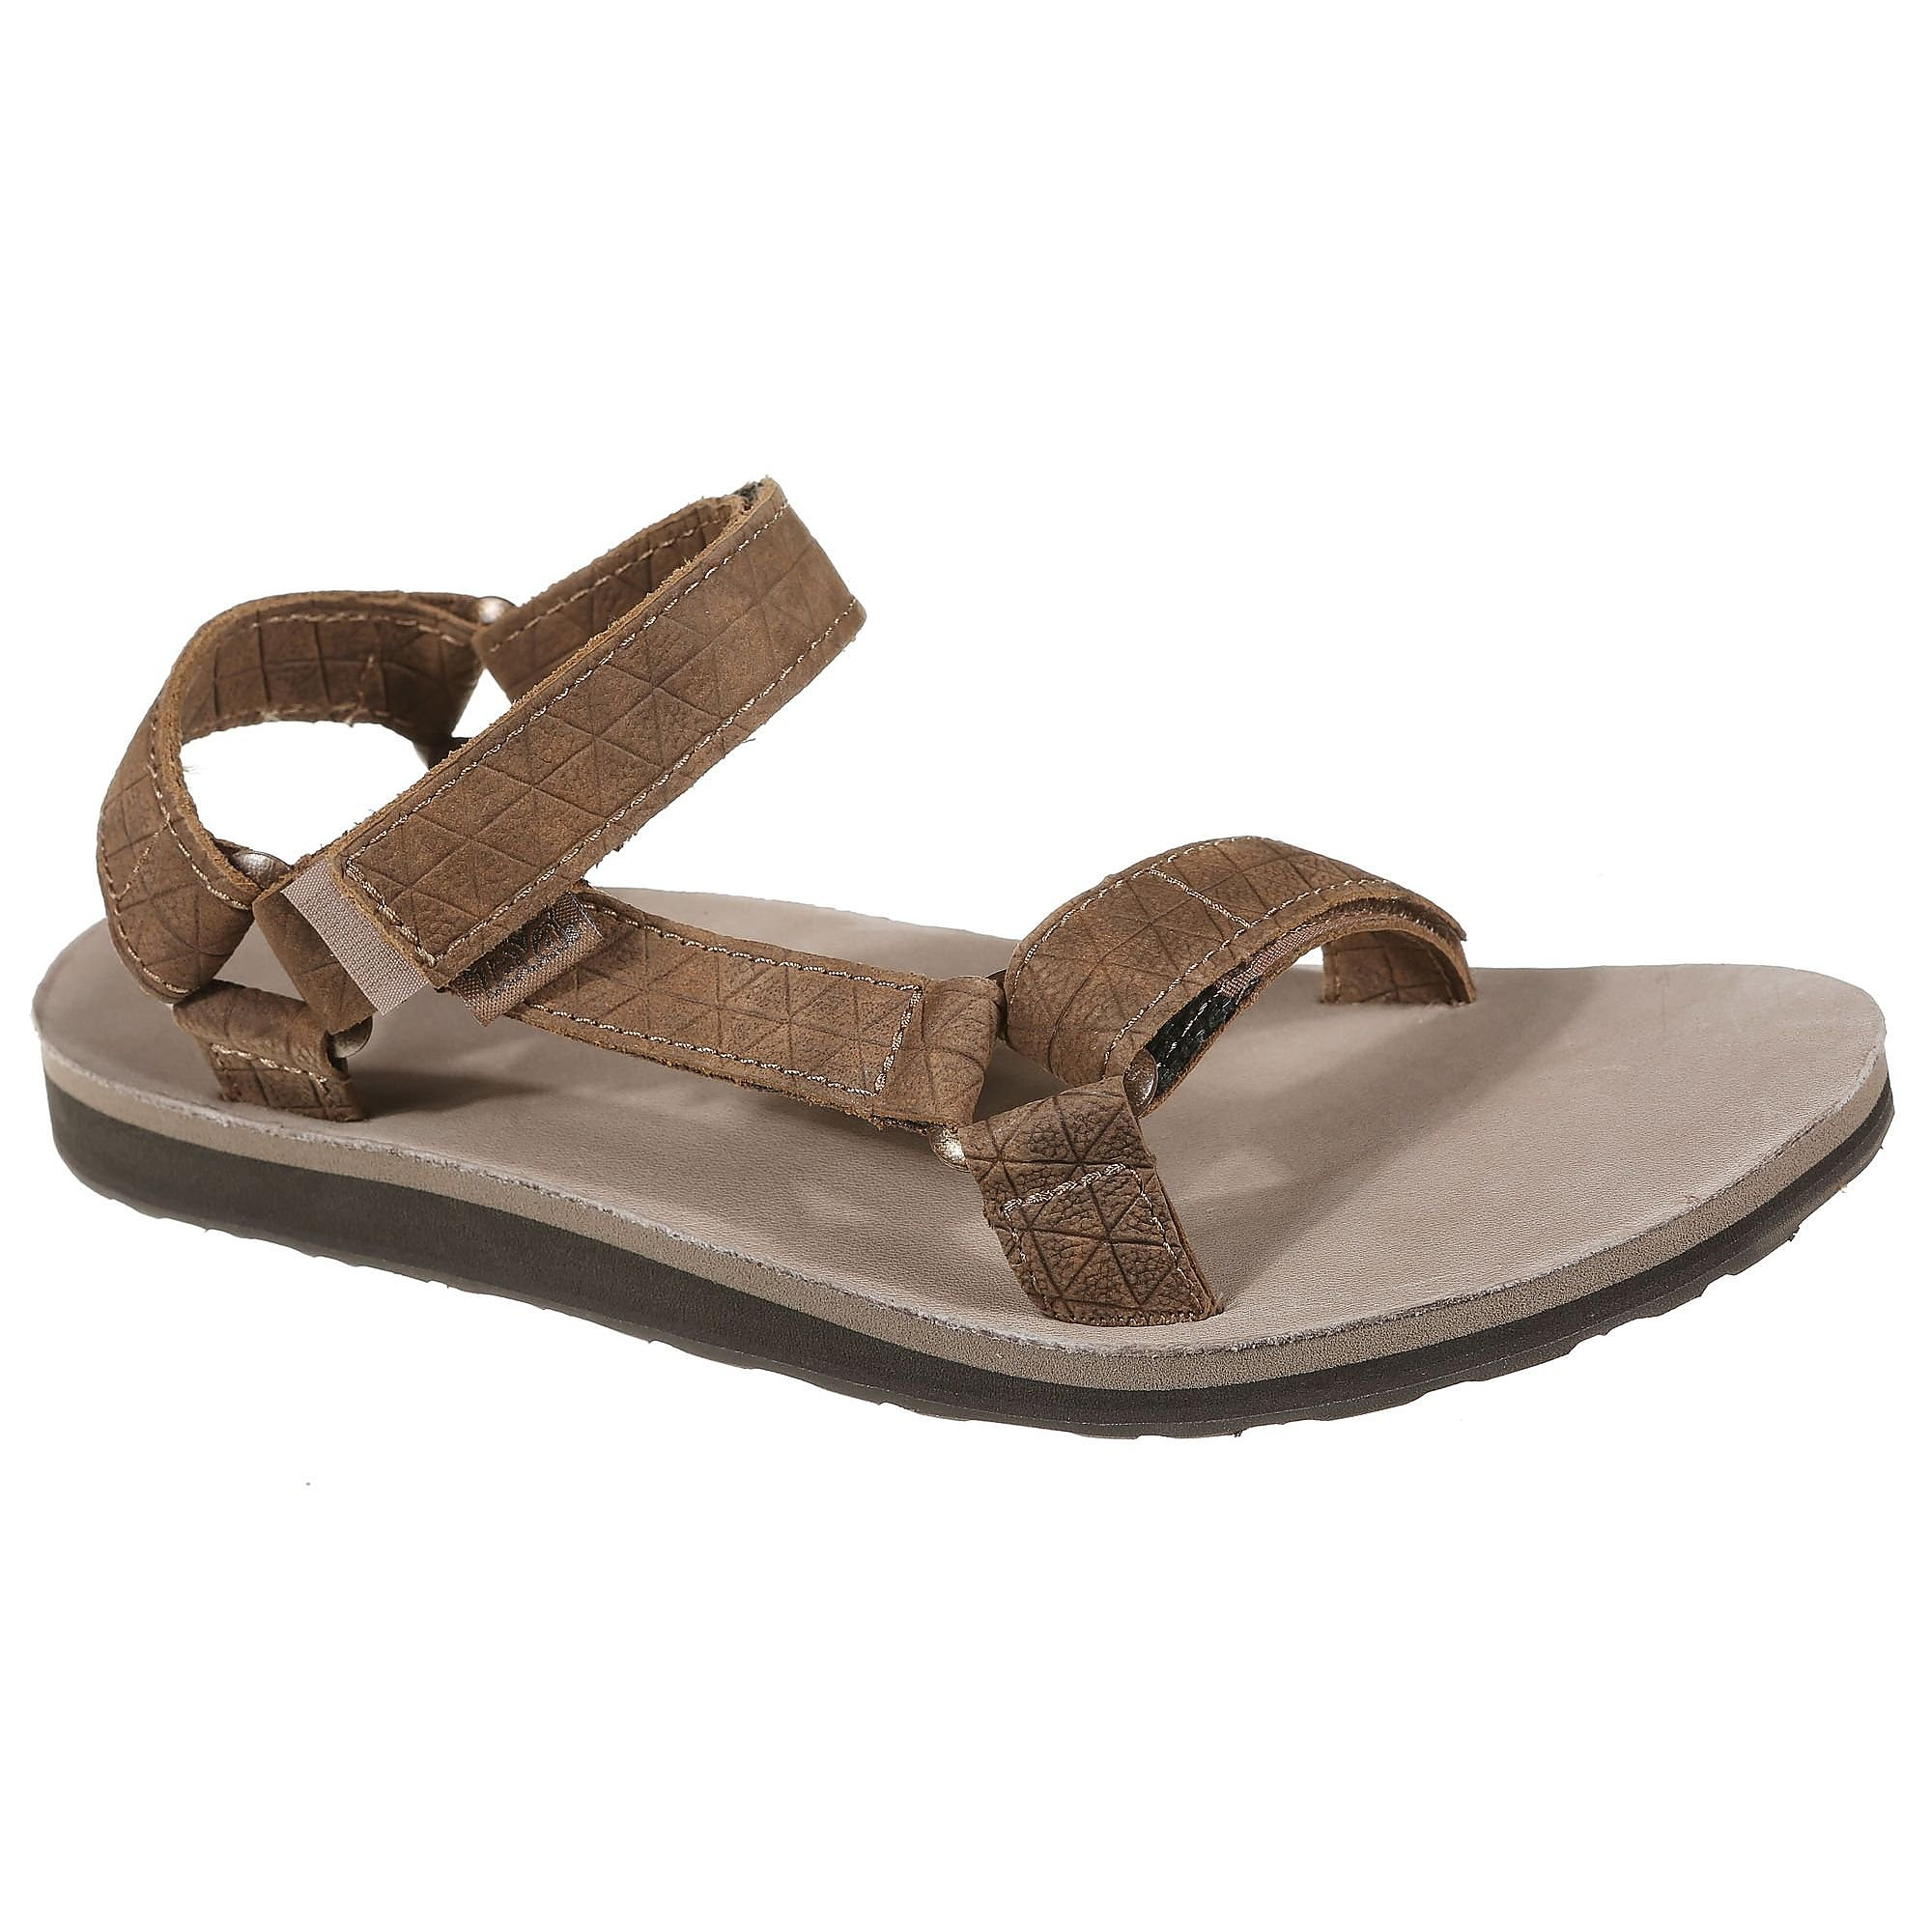 TEVA ORIGINAL UNIVERSAL DIAMOND